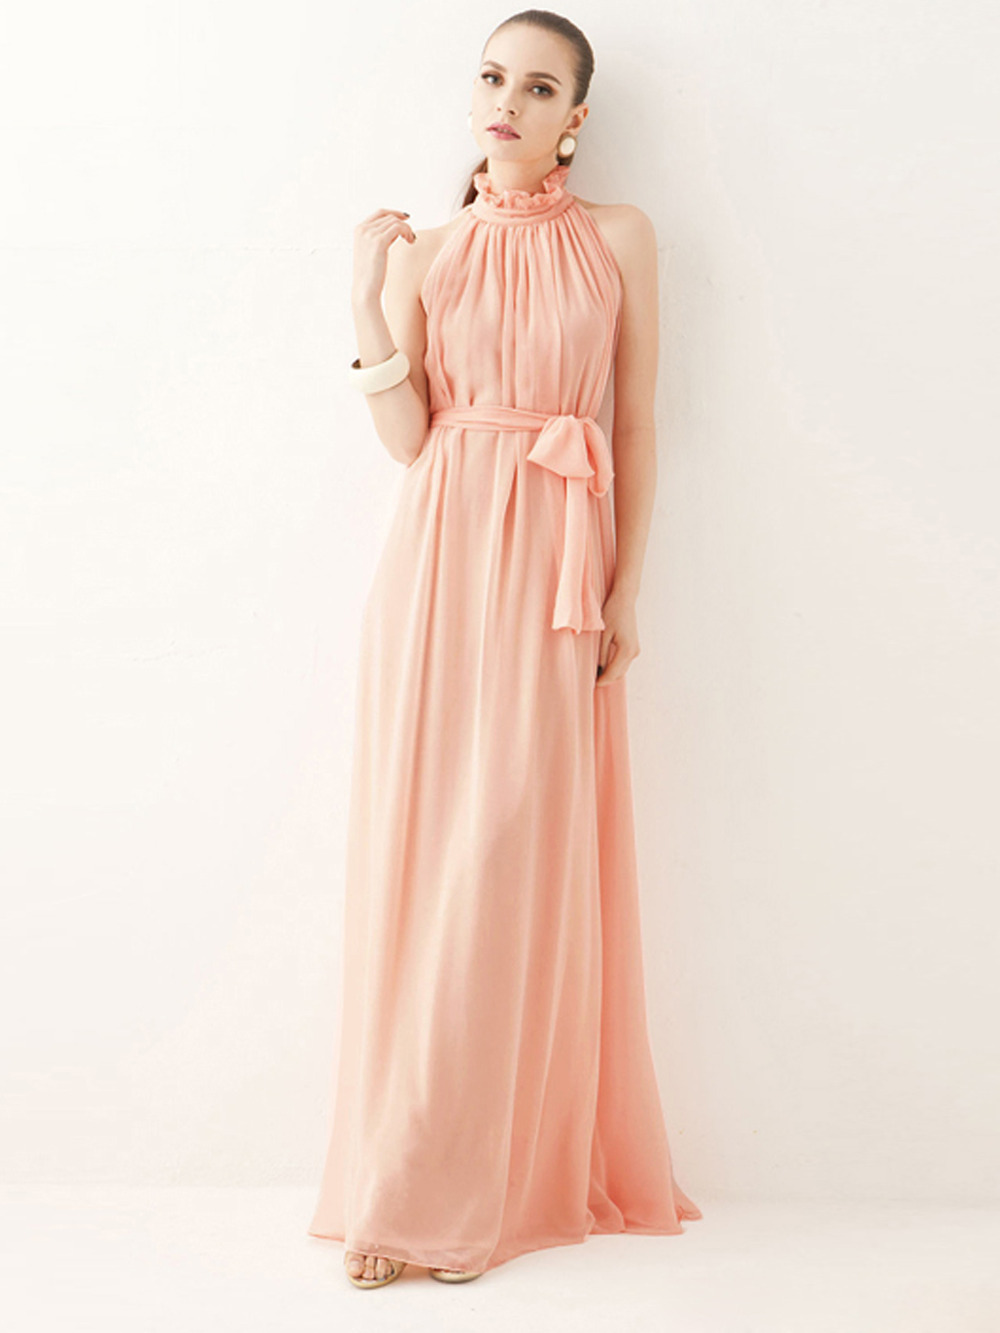 Aliexpress buy peach pink long elegant maternity dress gown aliexpress buy peach pink long elegant maternity dress gown for summer holiday beach maxi dress from reliable gown embroidery suppliers on best prom ombrellifo Image collections